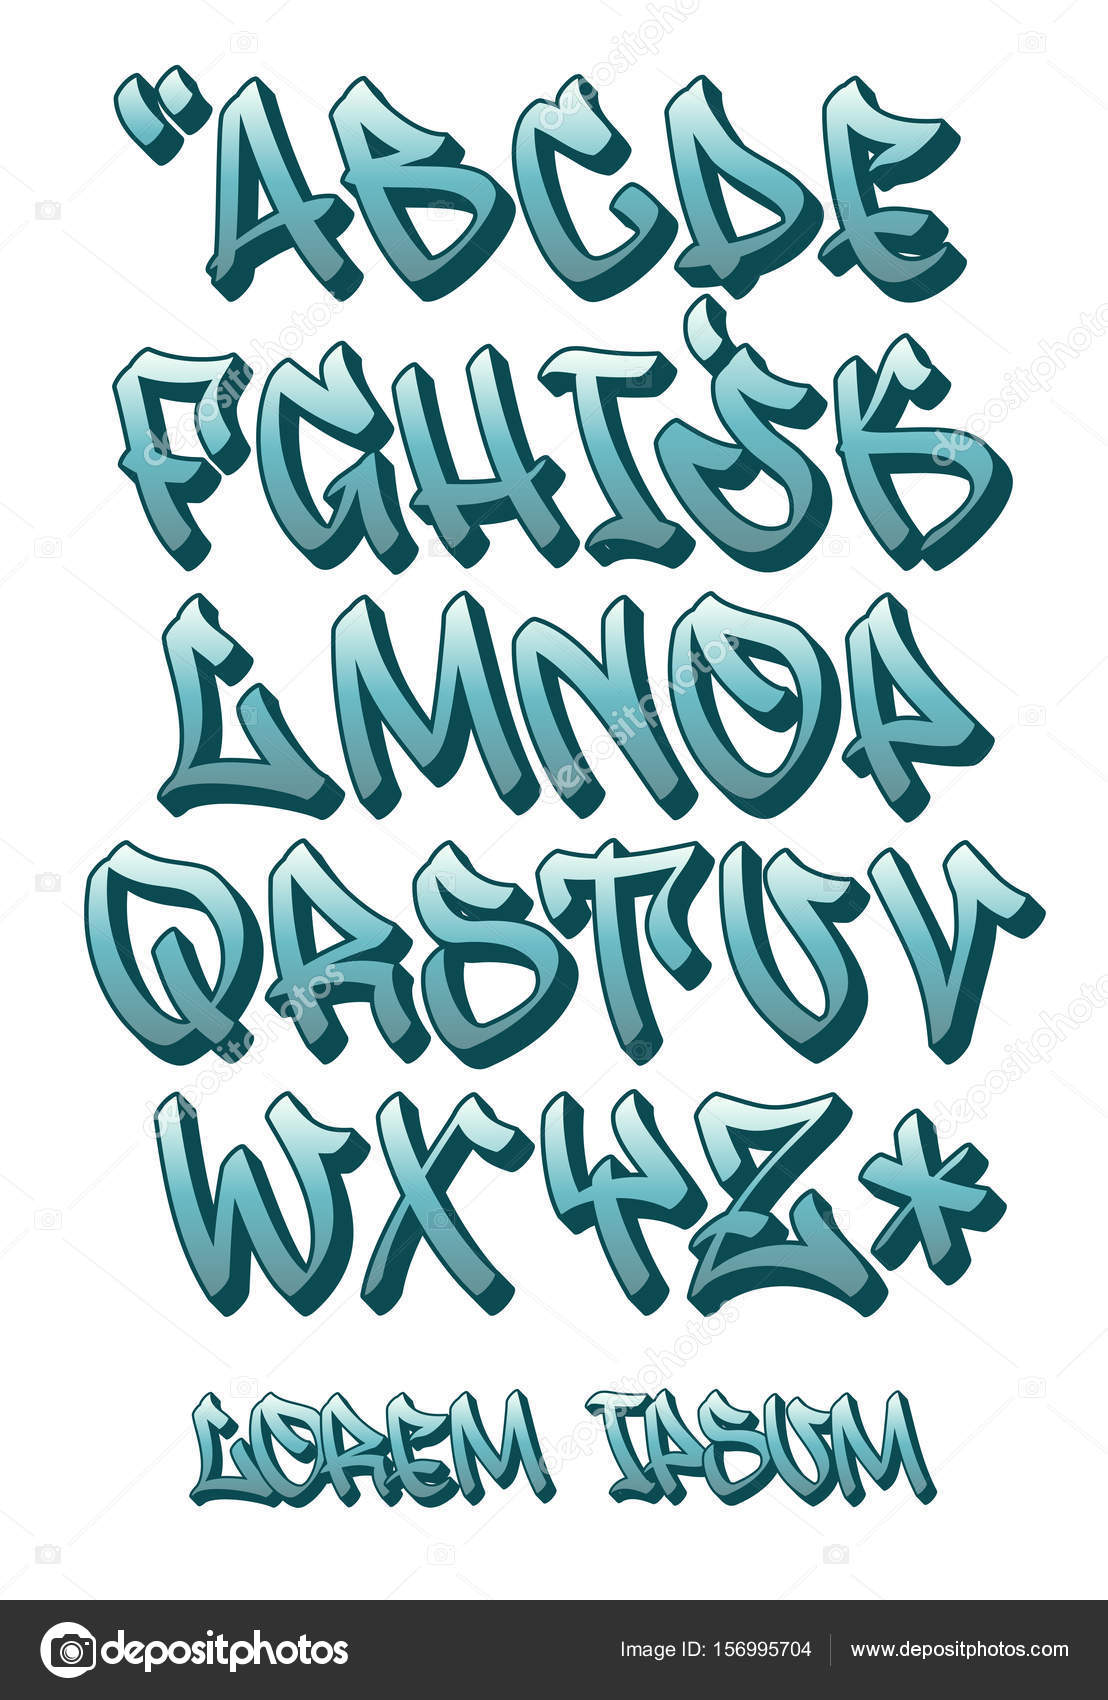 Vectorial Font In Graffiti Hand Written 3D Style Capital Letters Alphabet Vector By Photo Jope